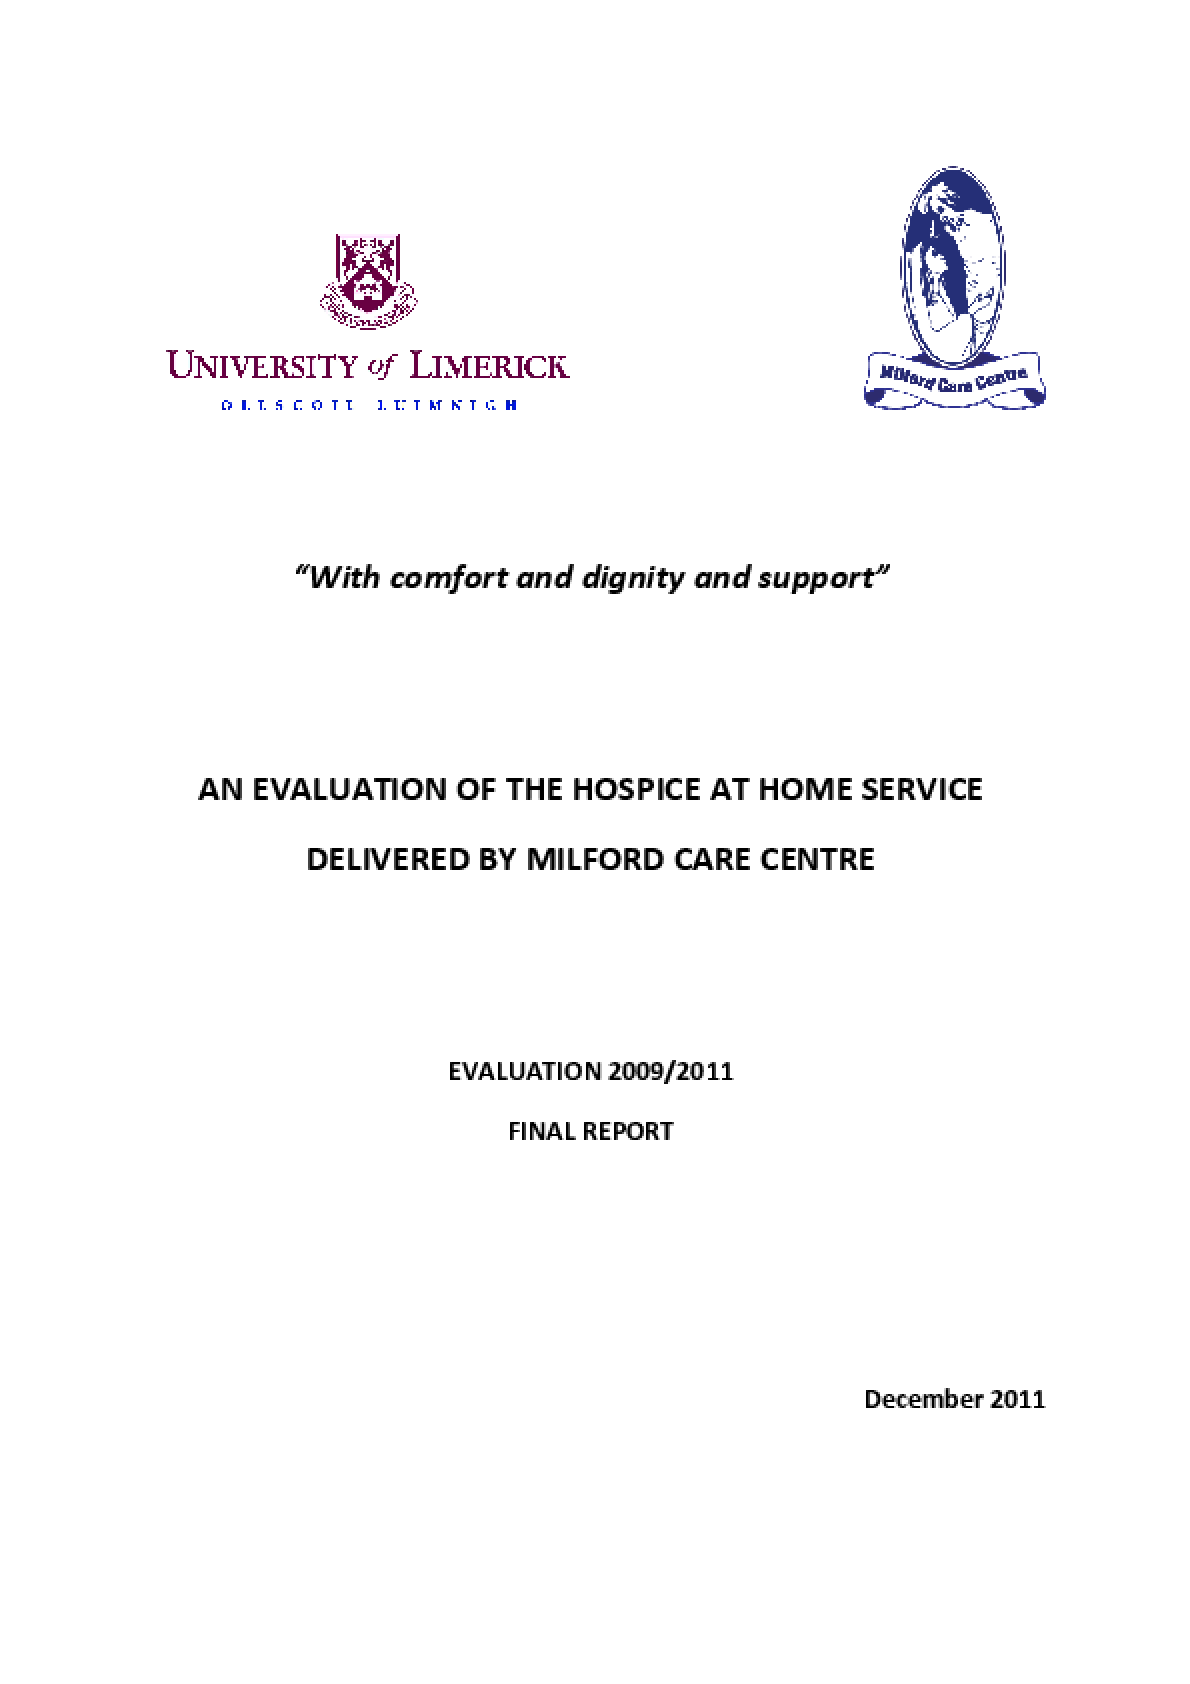 An Evaluation of the Hospice at Home Service Delivered by Milford Care Centre